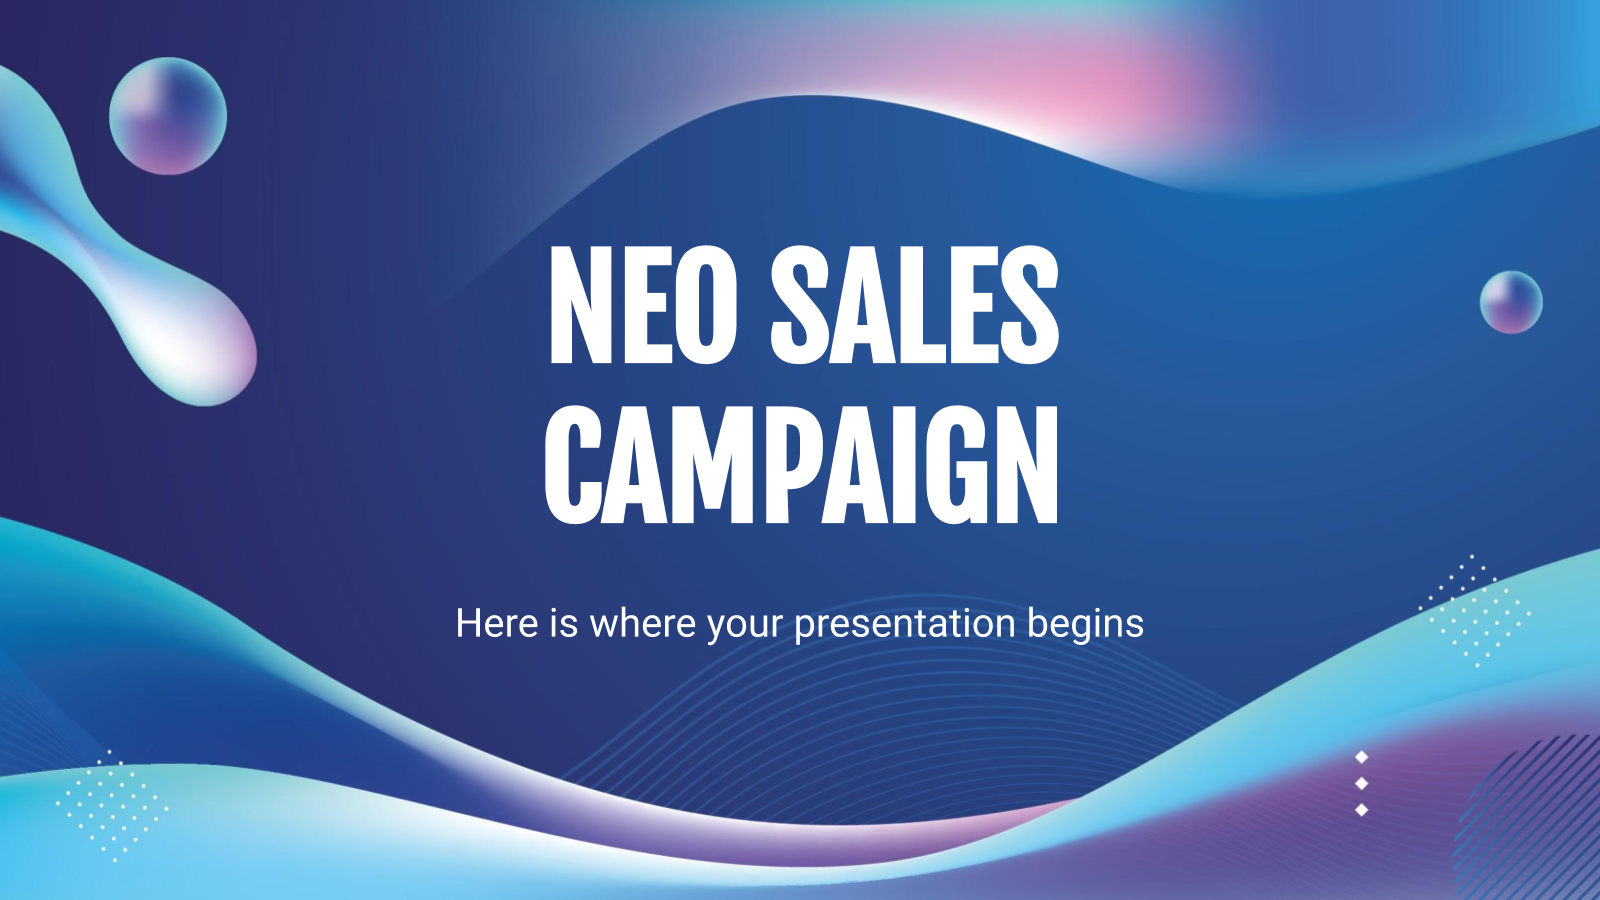 Neo Sales Campaign presentation template